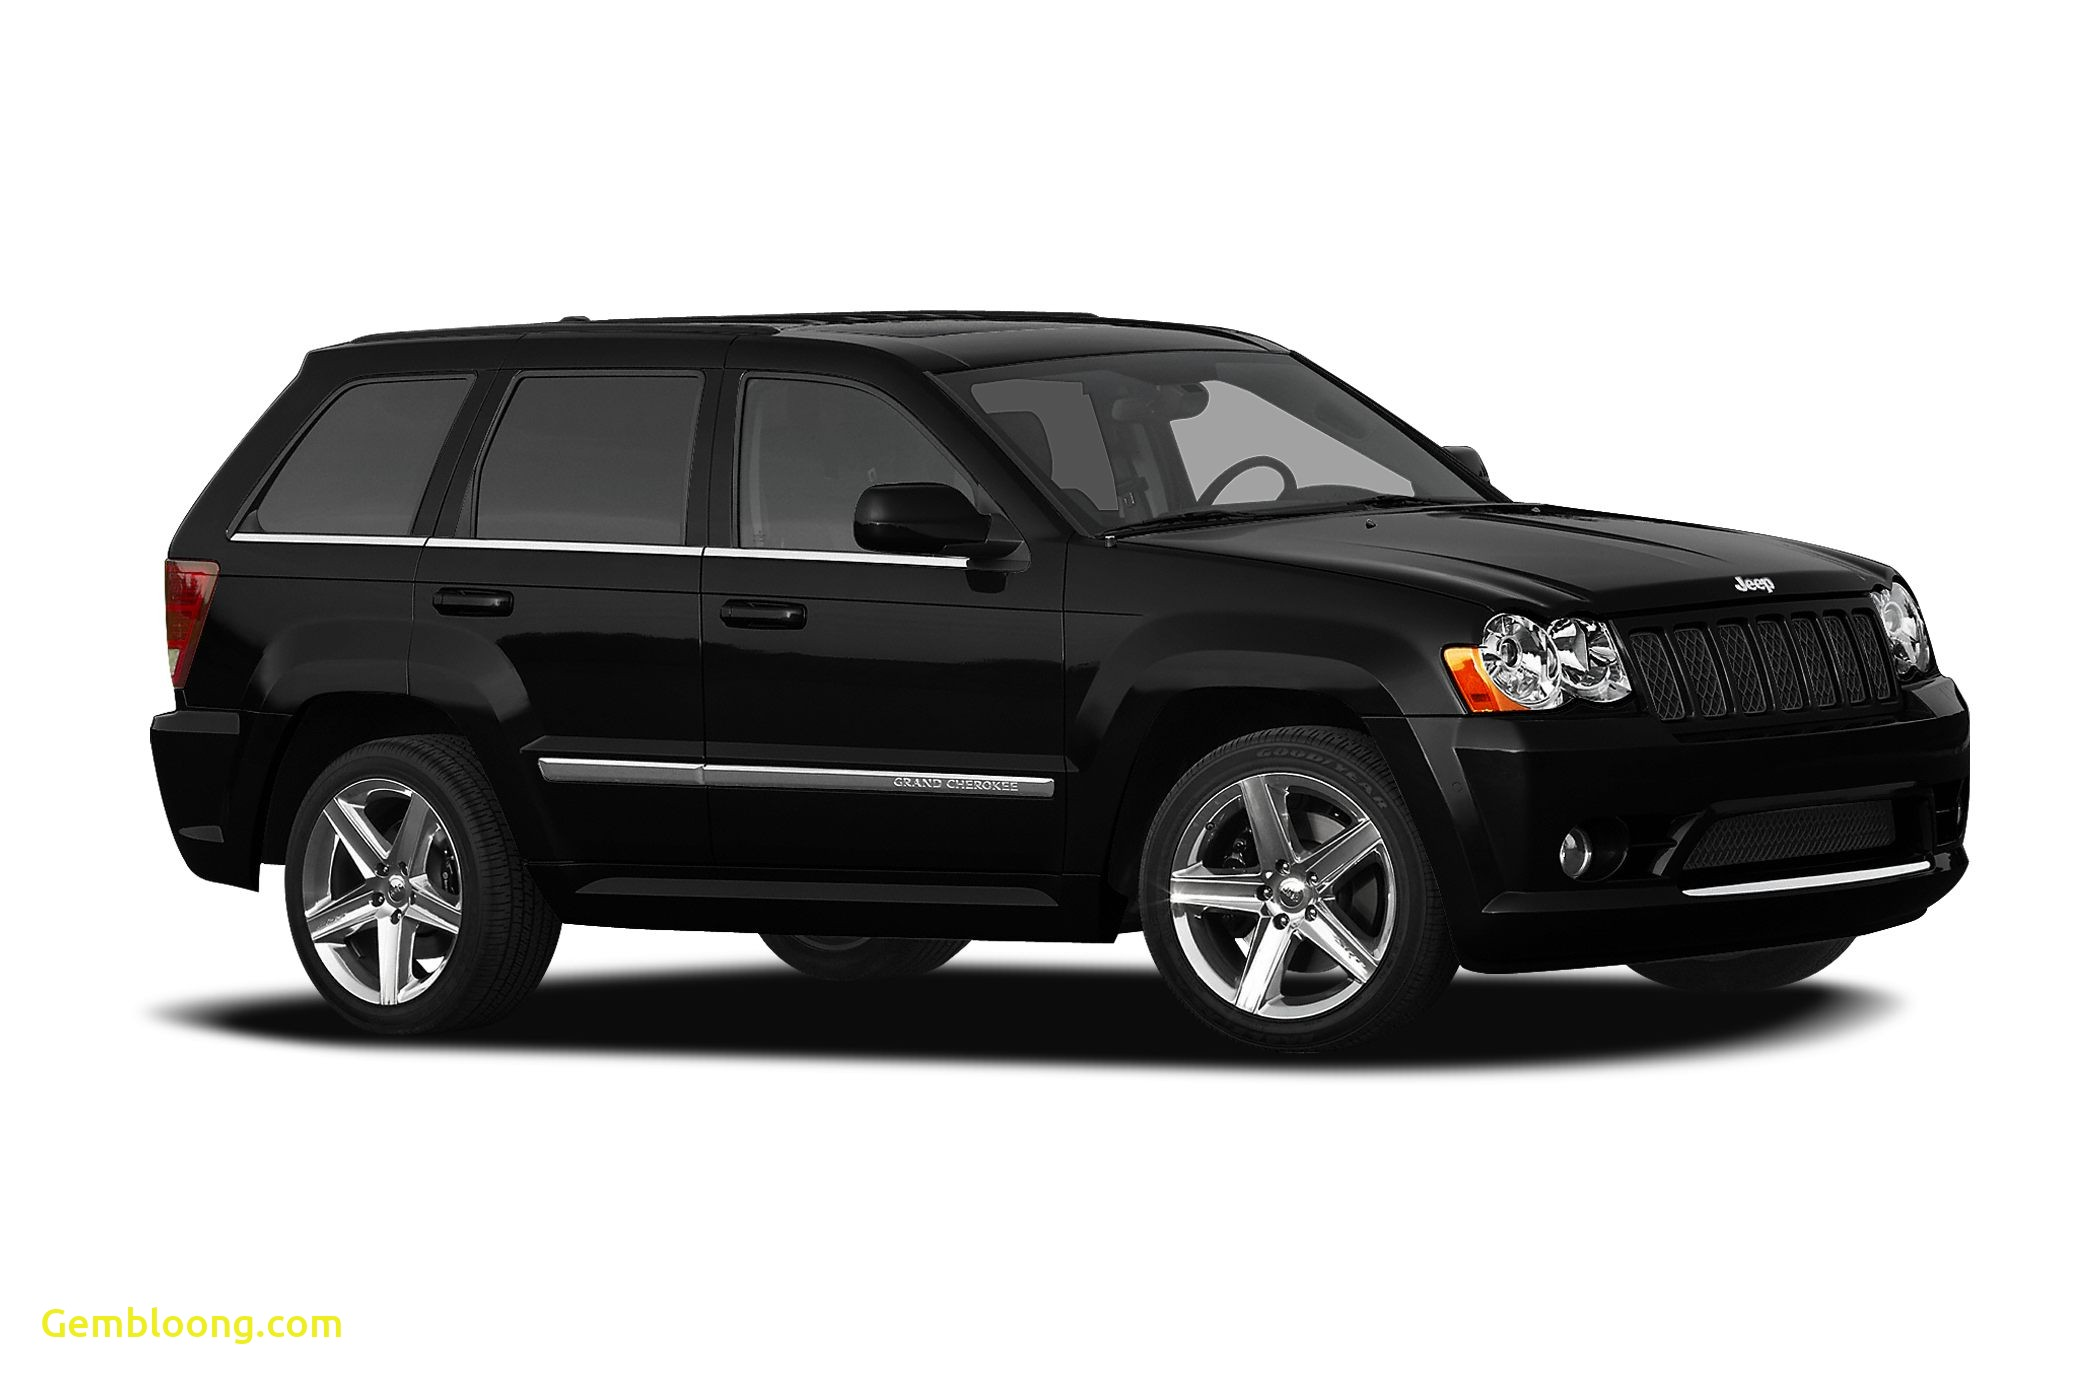 2009 Jeep Grand Cherokee Luxury 2009 Jeep Grand Cherokee Srt8 4dr 4×4 Pricing and Options